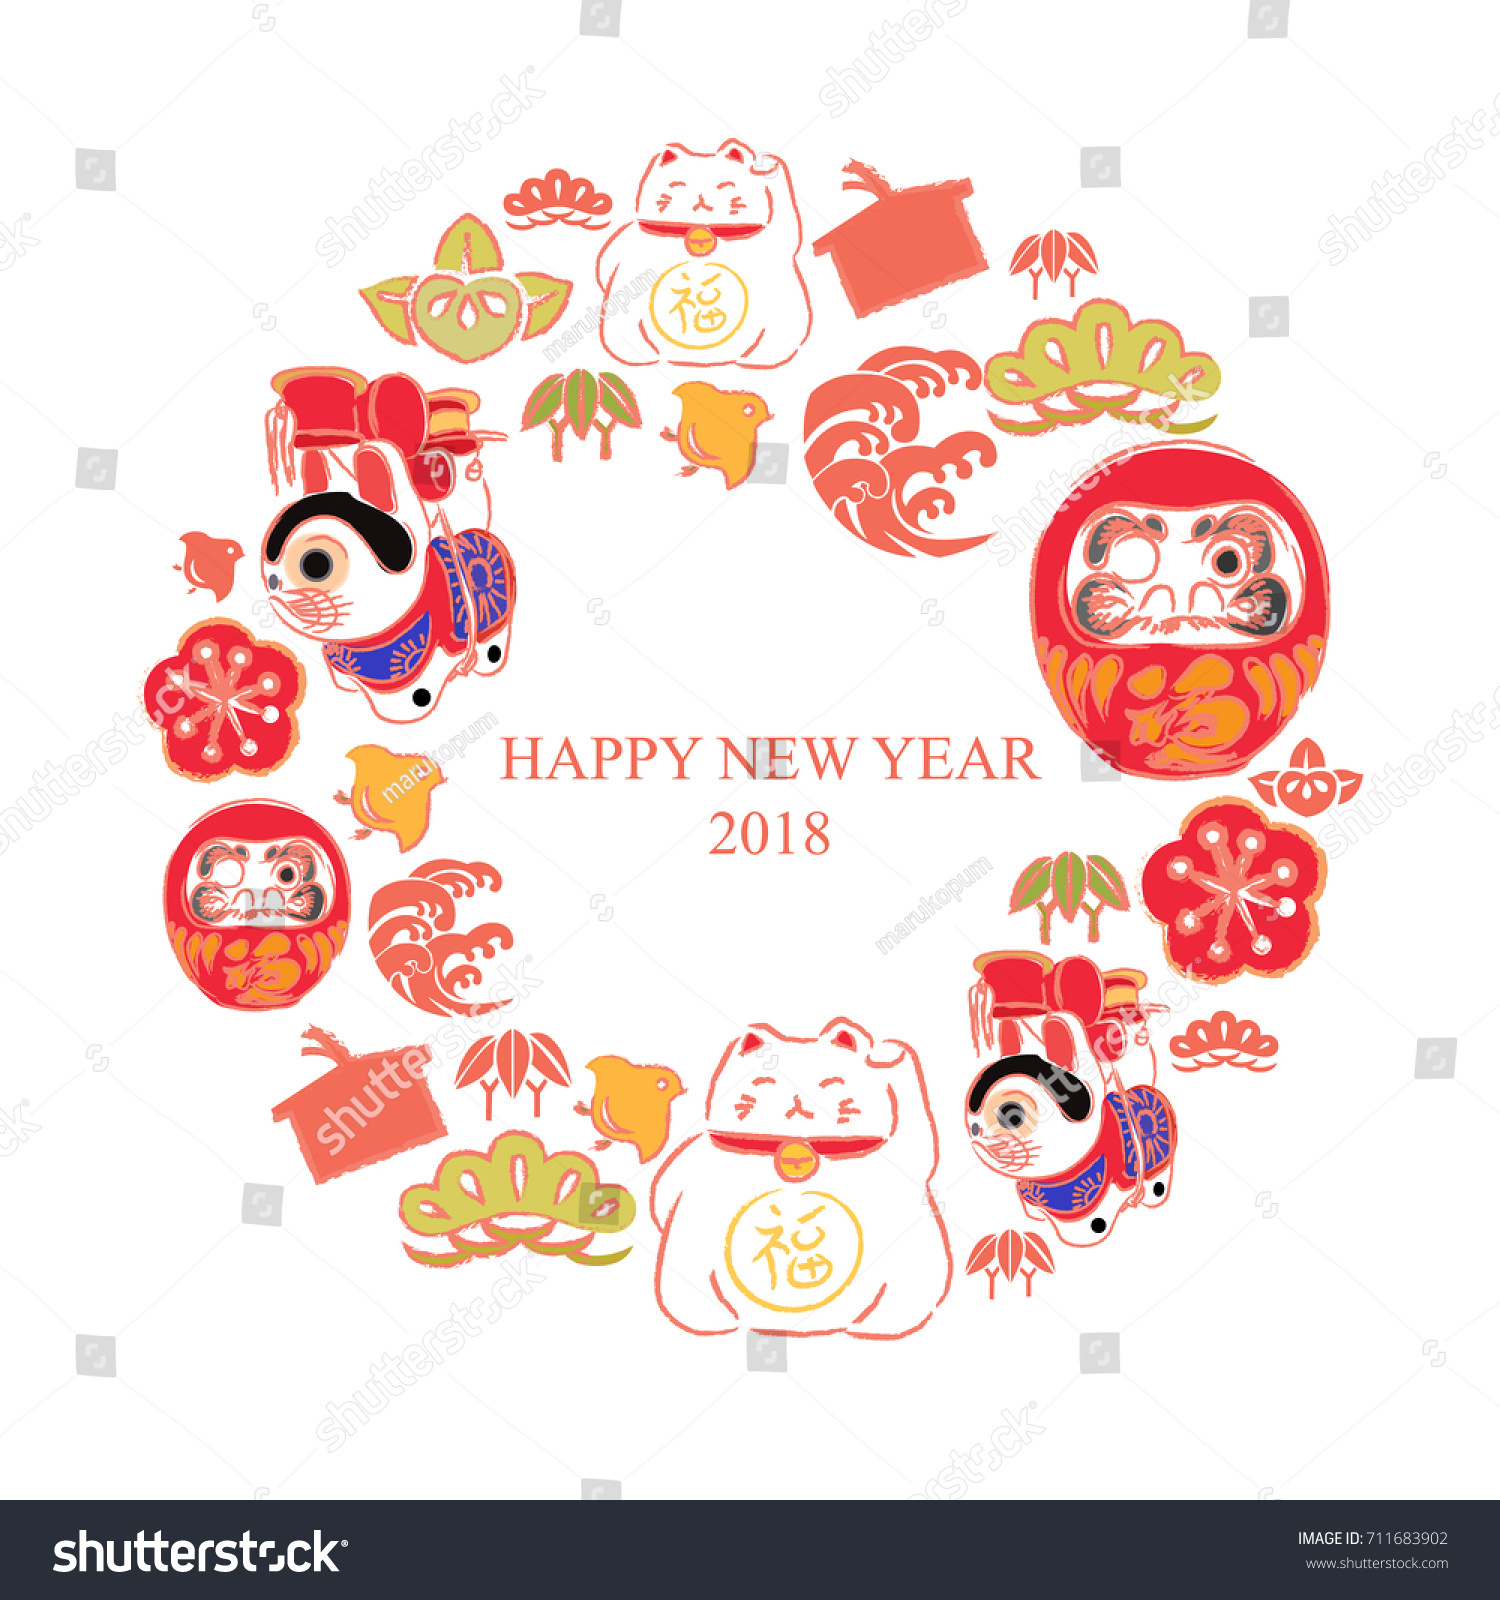 new year card greeting card in japanese elements and good luck symbols icon set for